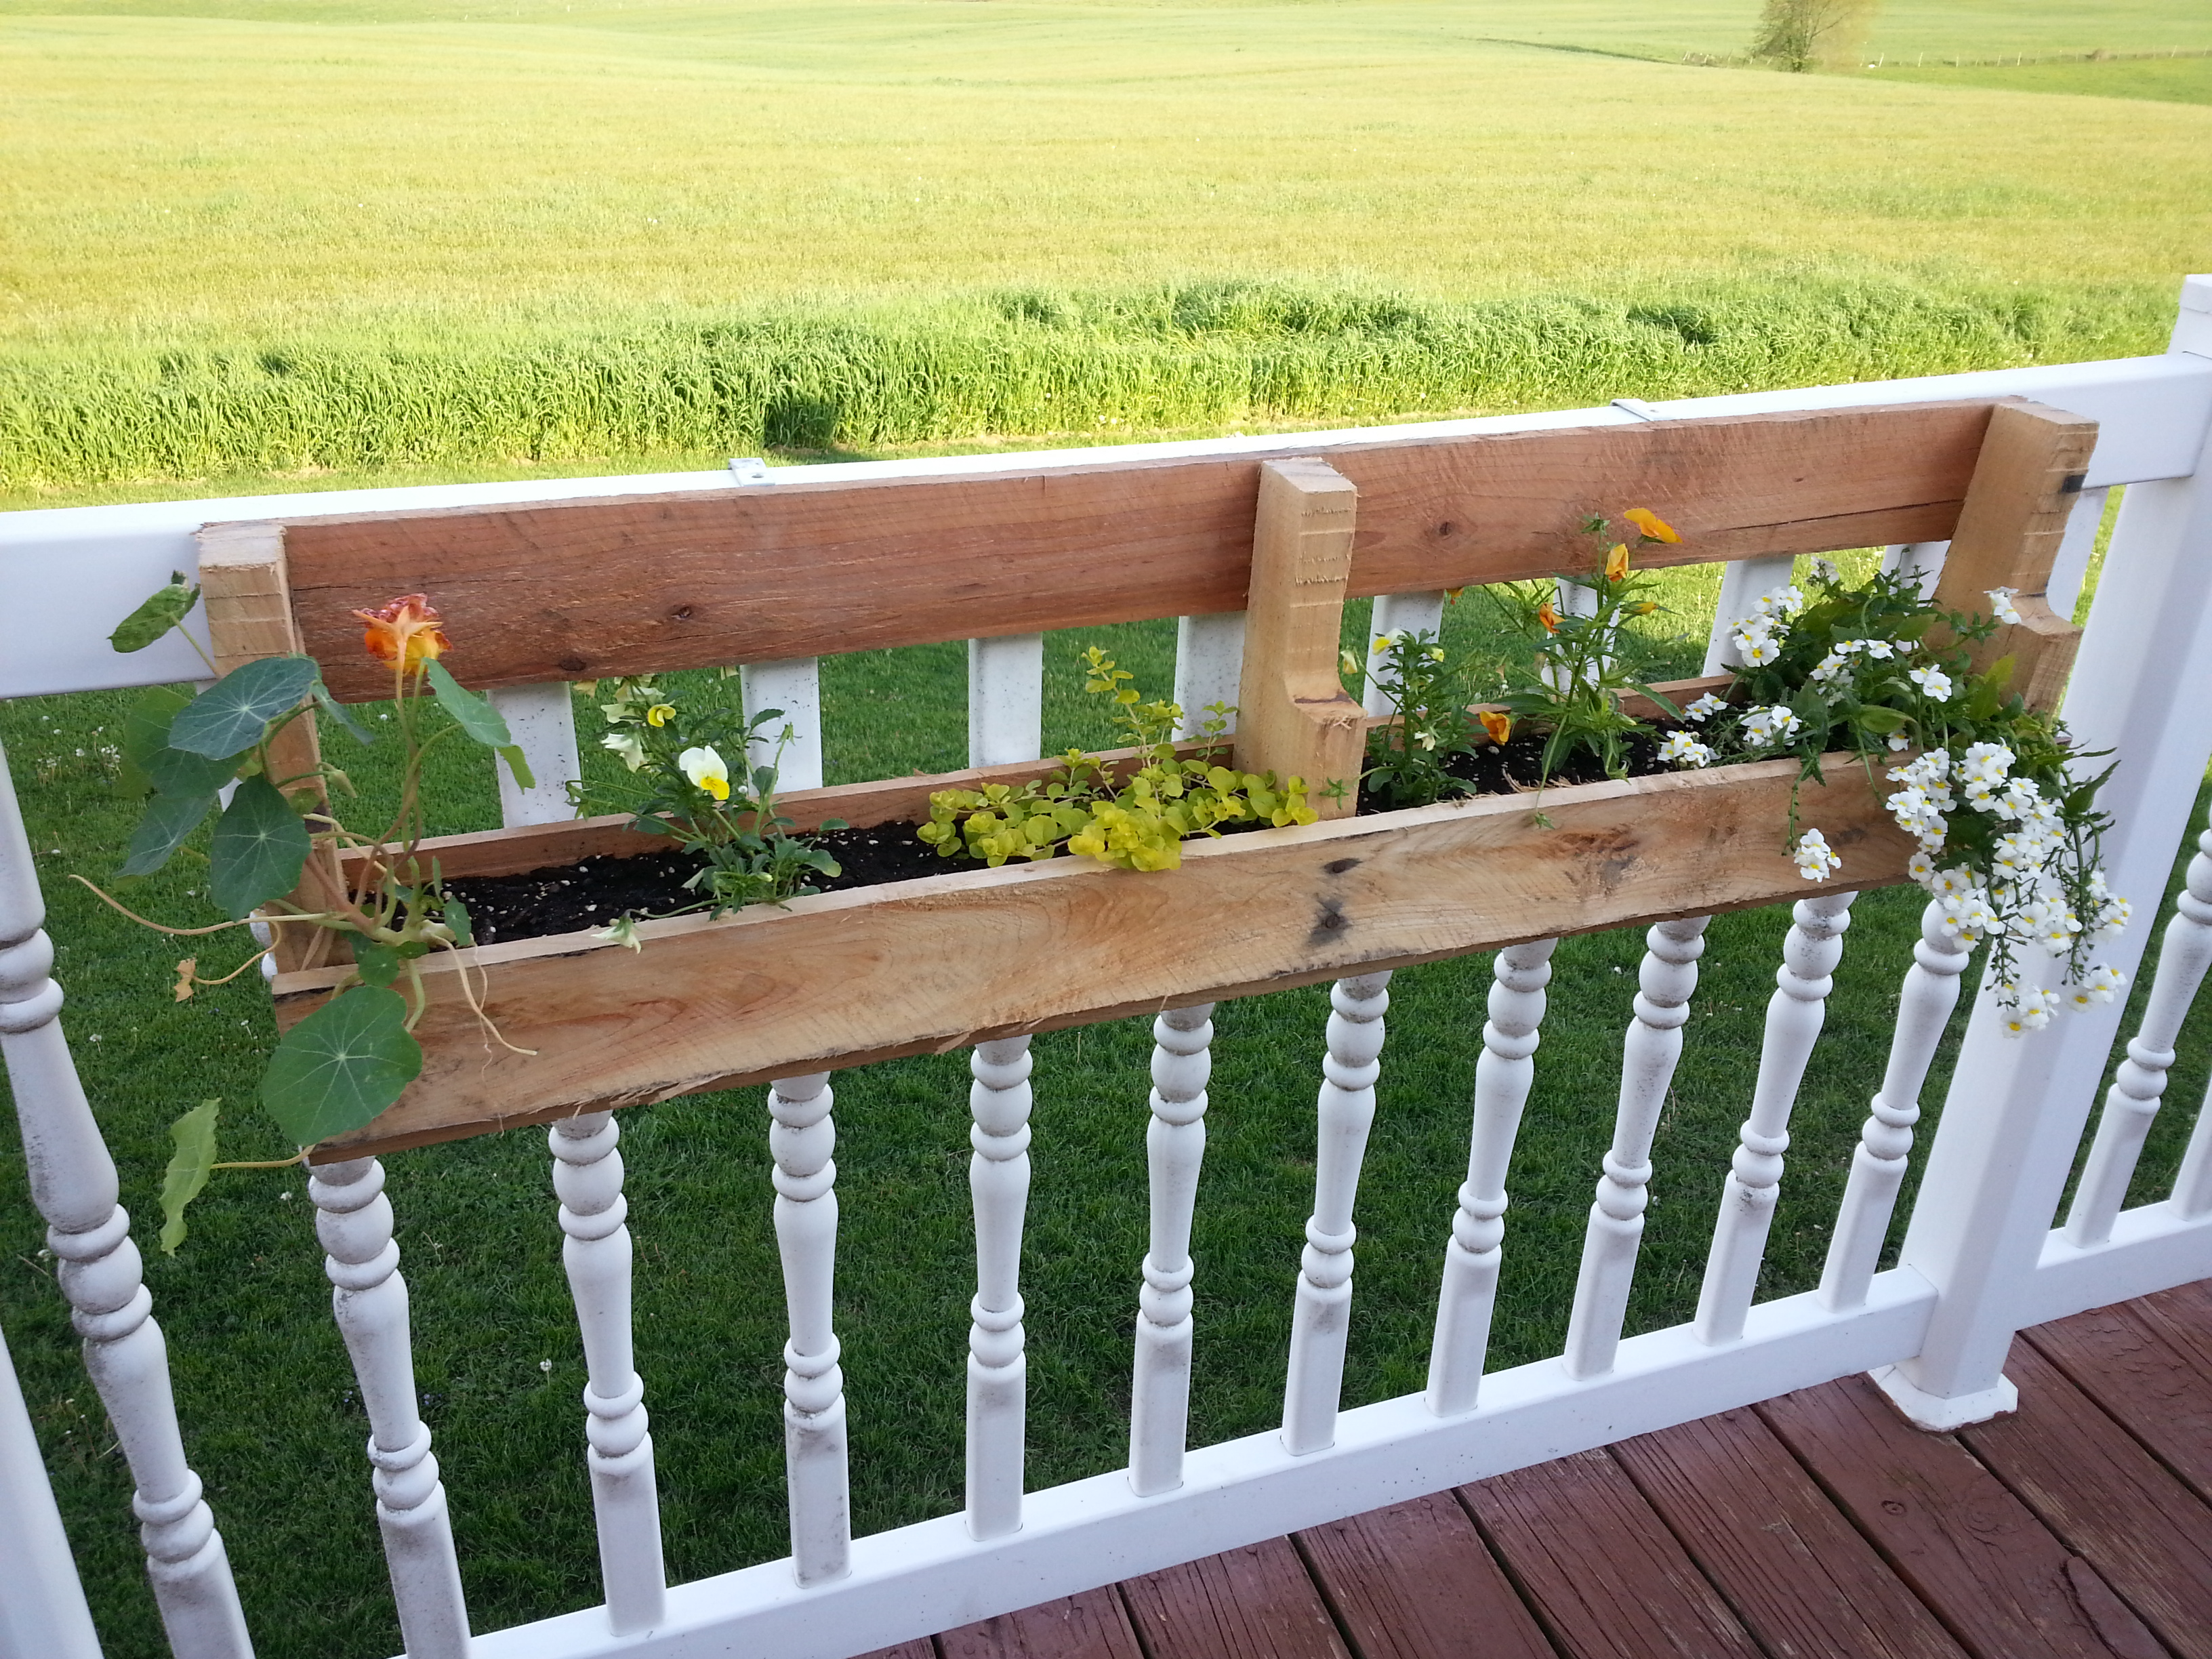 Diy pallet flower boxes simplify the chaos - Flower boxes for railings ...